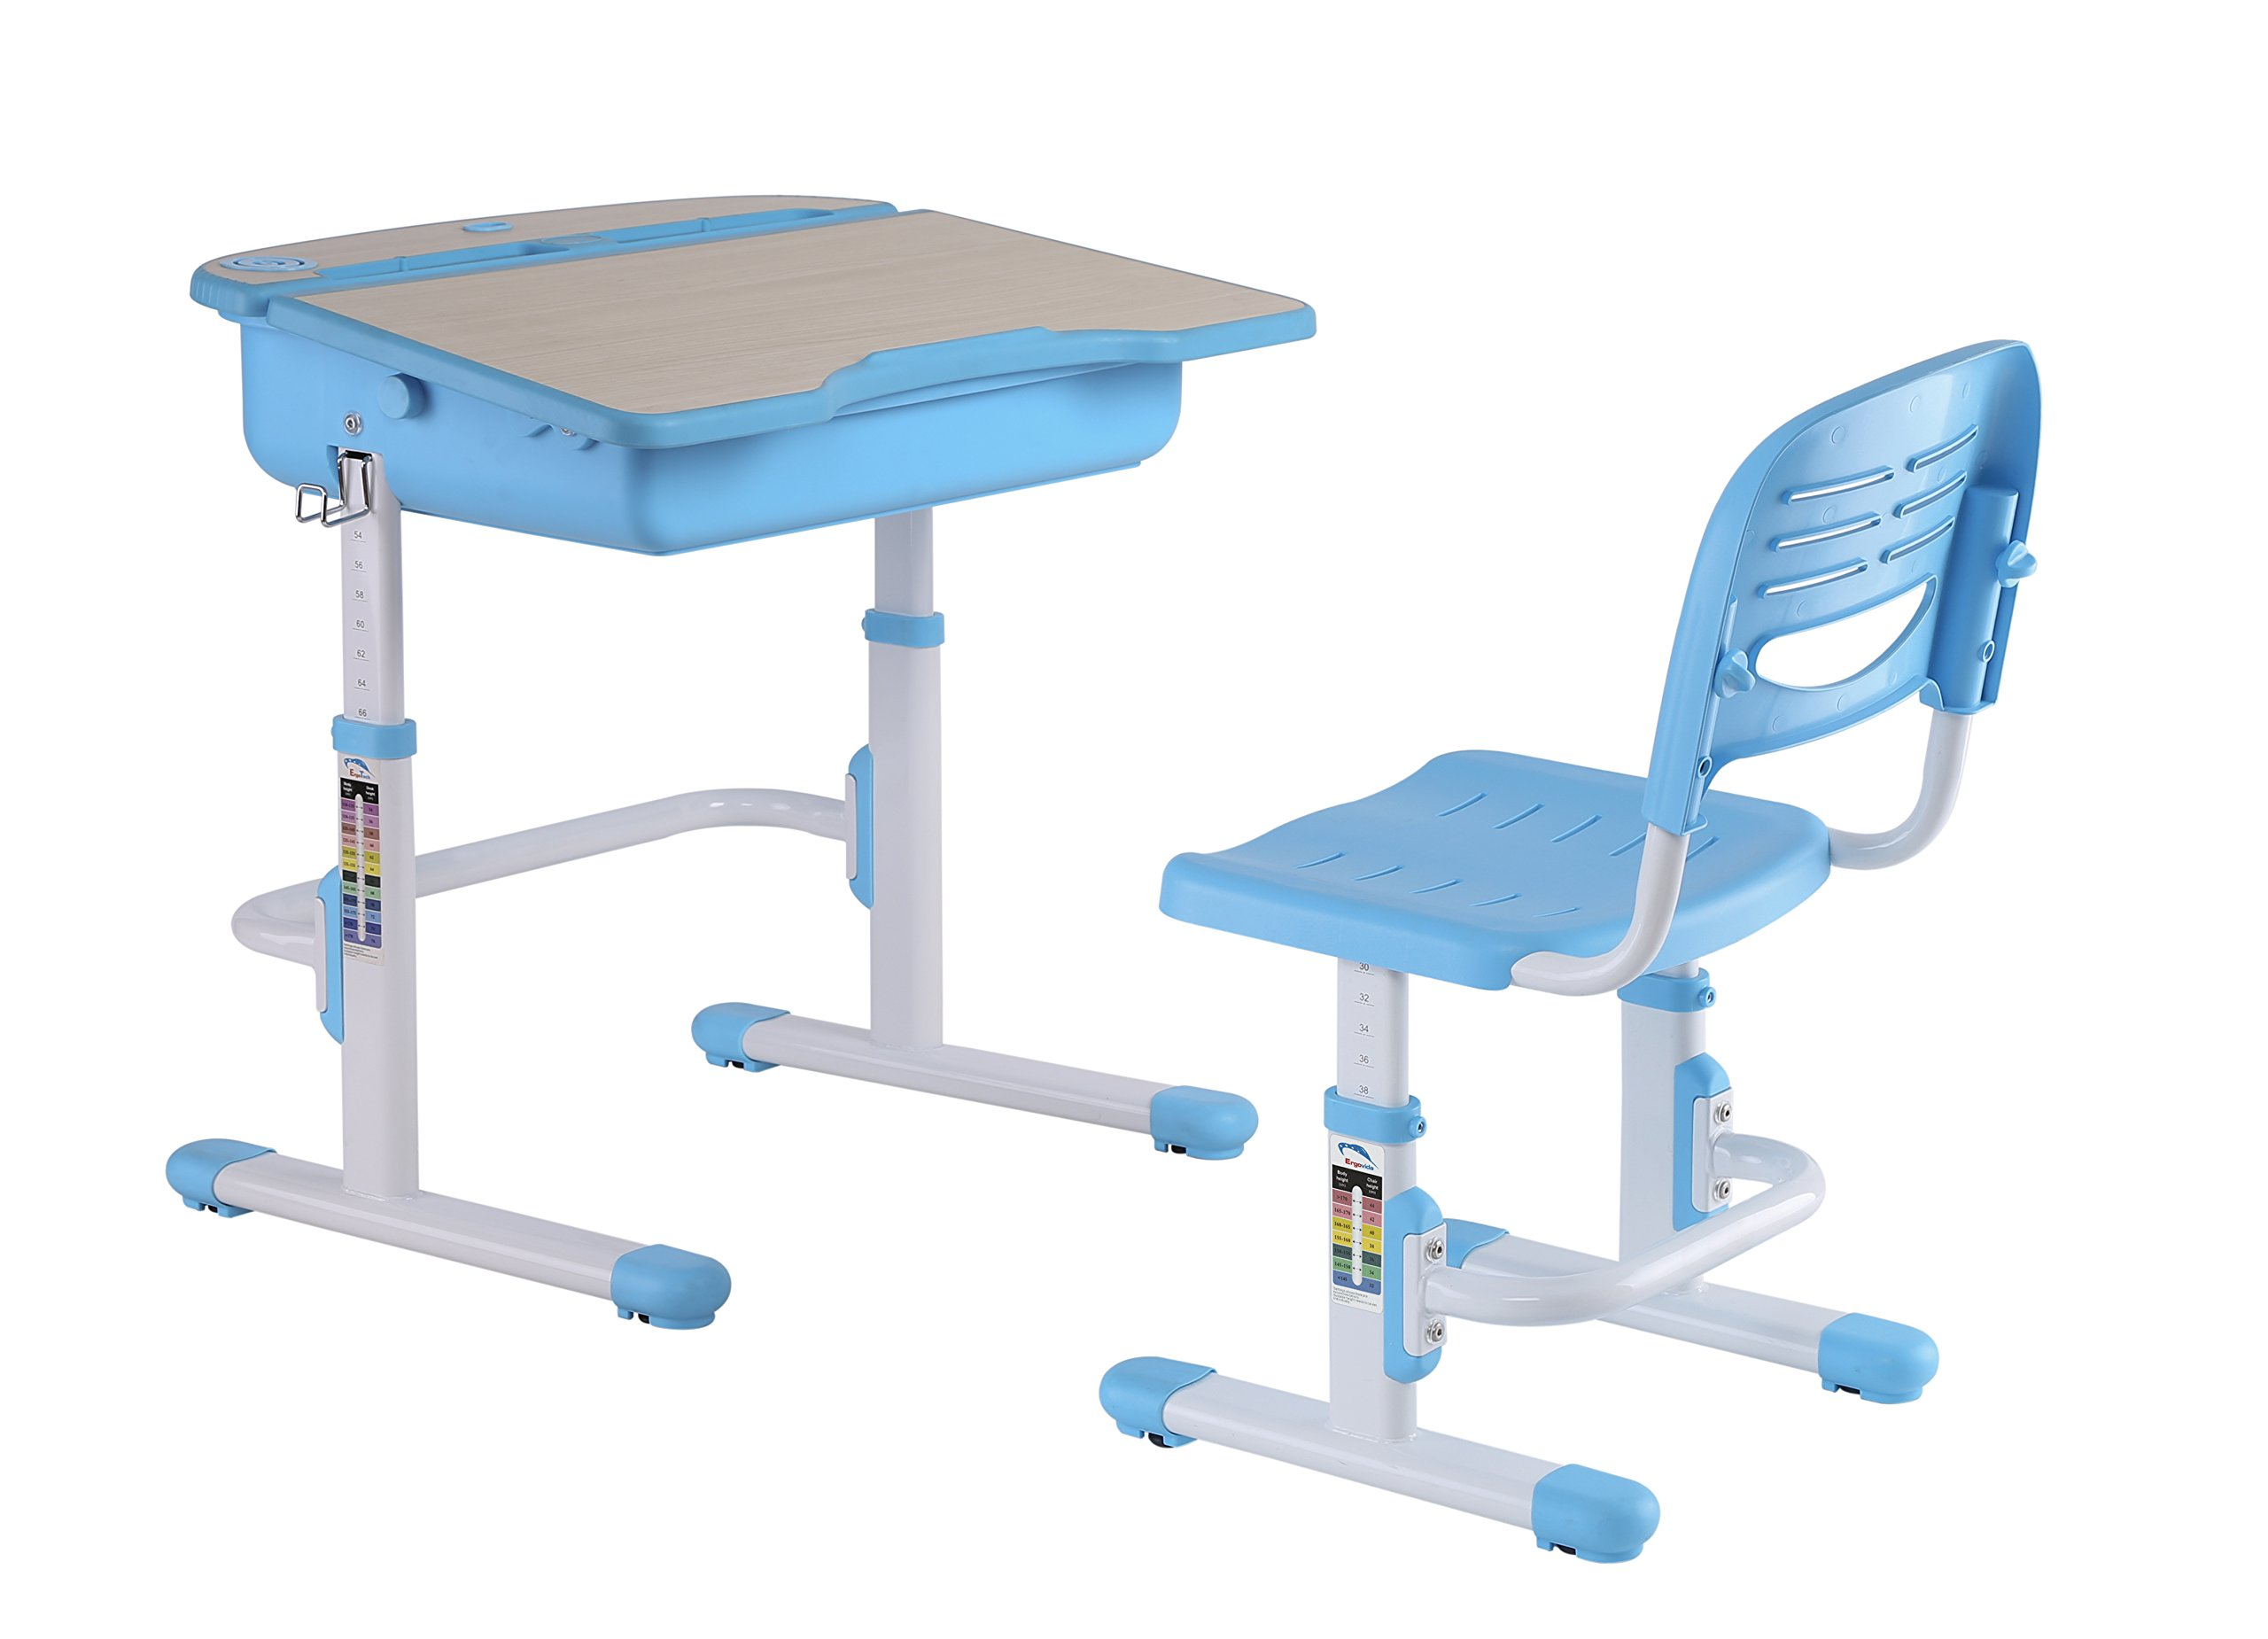 The House of Trade Adjustable Height Student School Desk 26.5 in. Wide x 21 in. Deep - For Kids Ages 5 to 14 - Rises from Sit to Stand Up (Blue)